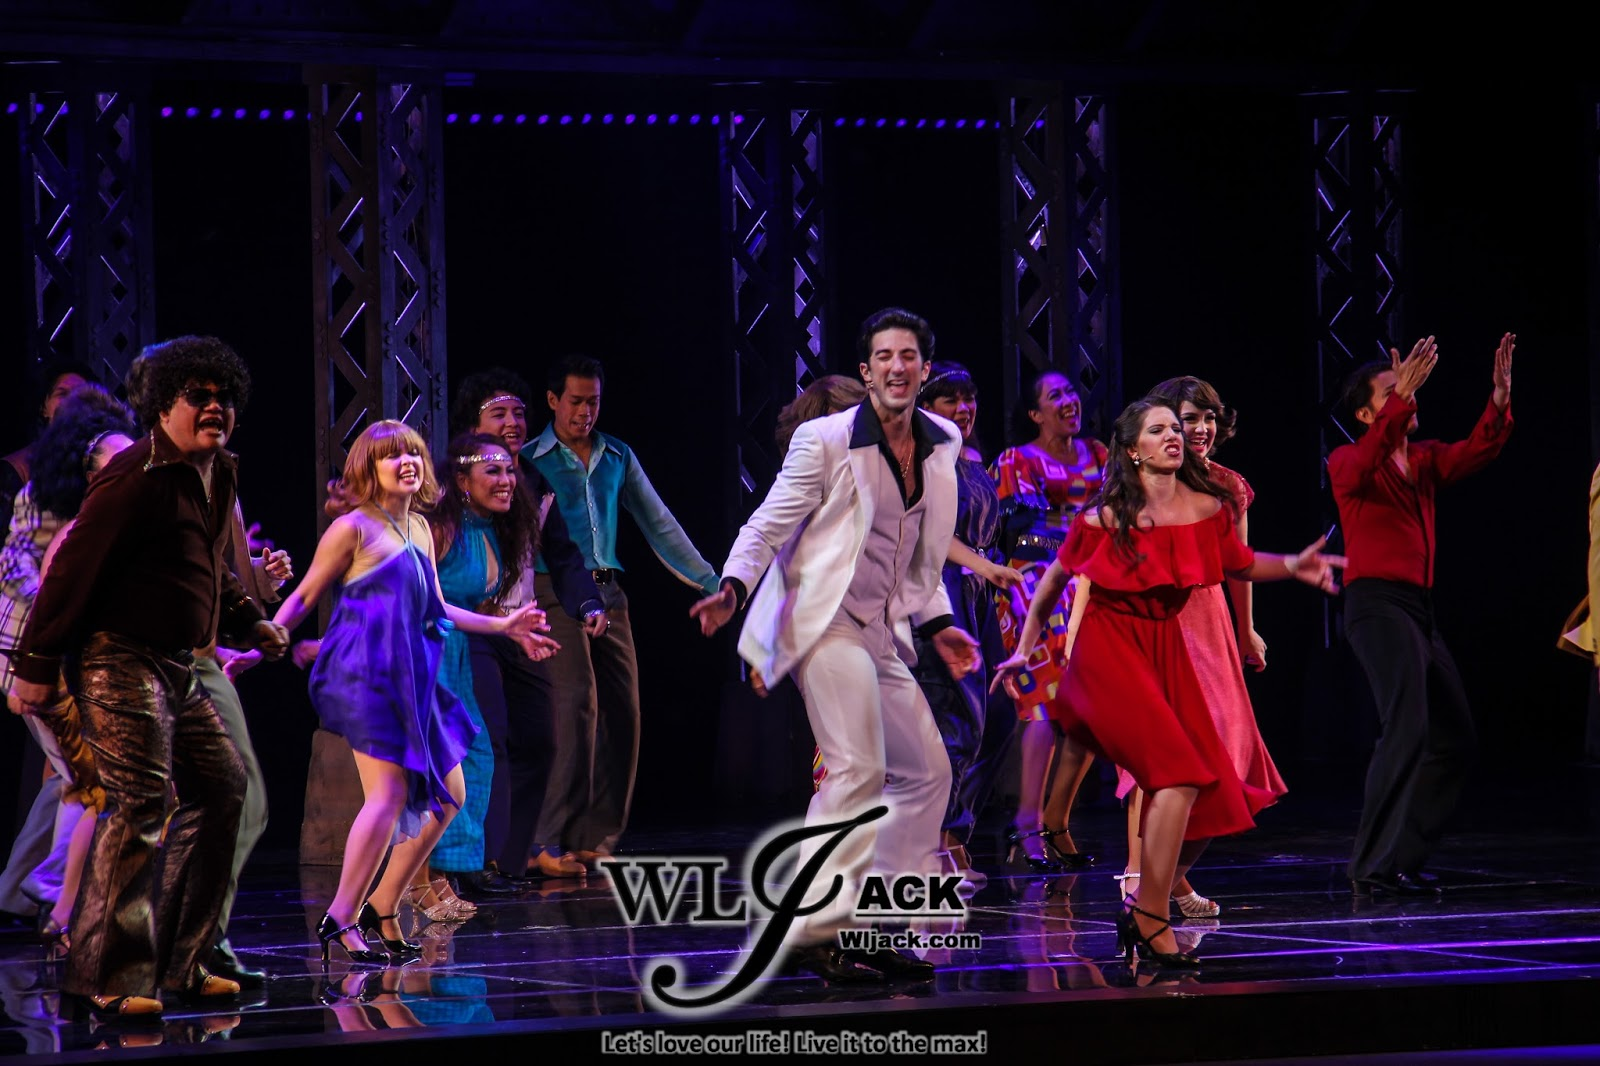 [Coverage] Saturday Night Fever The Musical Malaysia 2015 ...